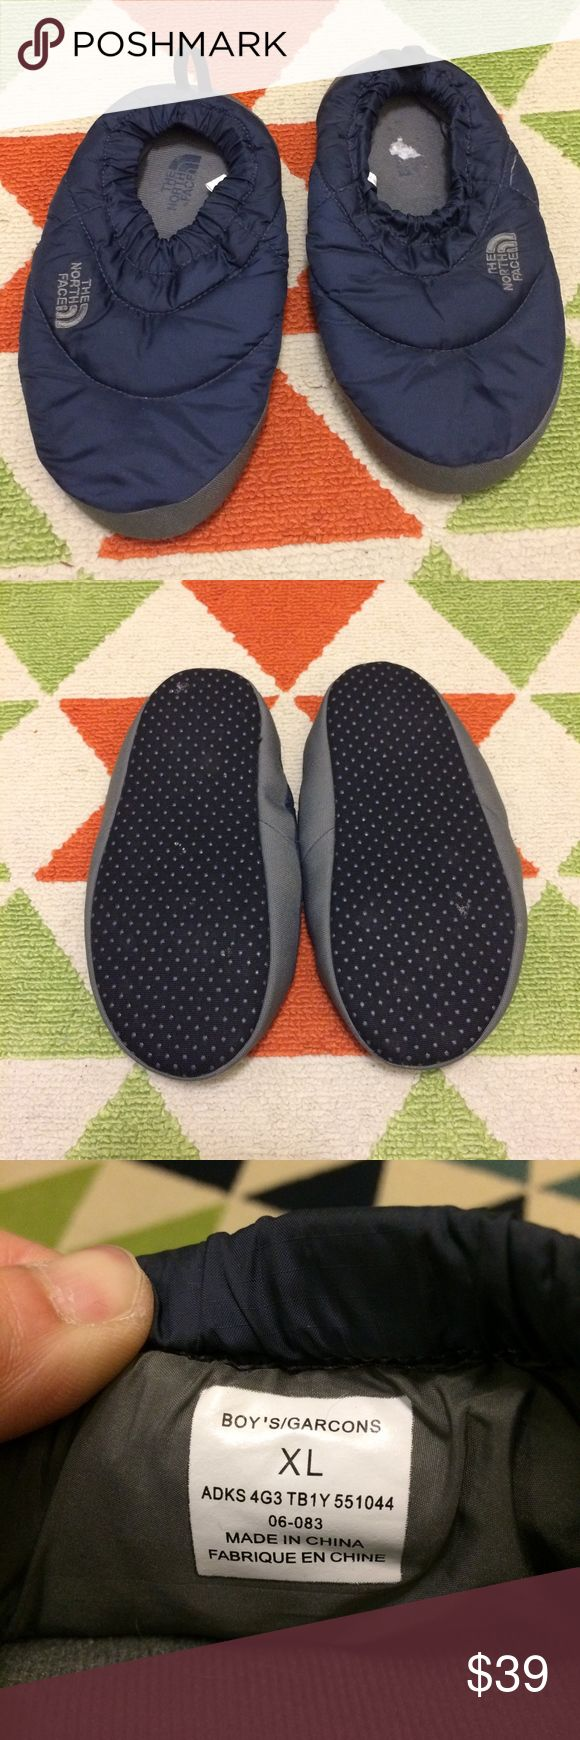 The North Face Down Slippers Excellent condition! Navy with grey trim, down slippers, grippy dots on the soles, pull tabs, and elastic opening. These say Boys XL and I am a womens size 8, these fit a bit snug but still fit. So I would say if you're a womens size 7 or 6 these would be perfect for you. The inside sole has the price sticker parts which I will continue to remove but thats all! The North Face Shoes Slippers